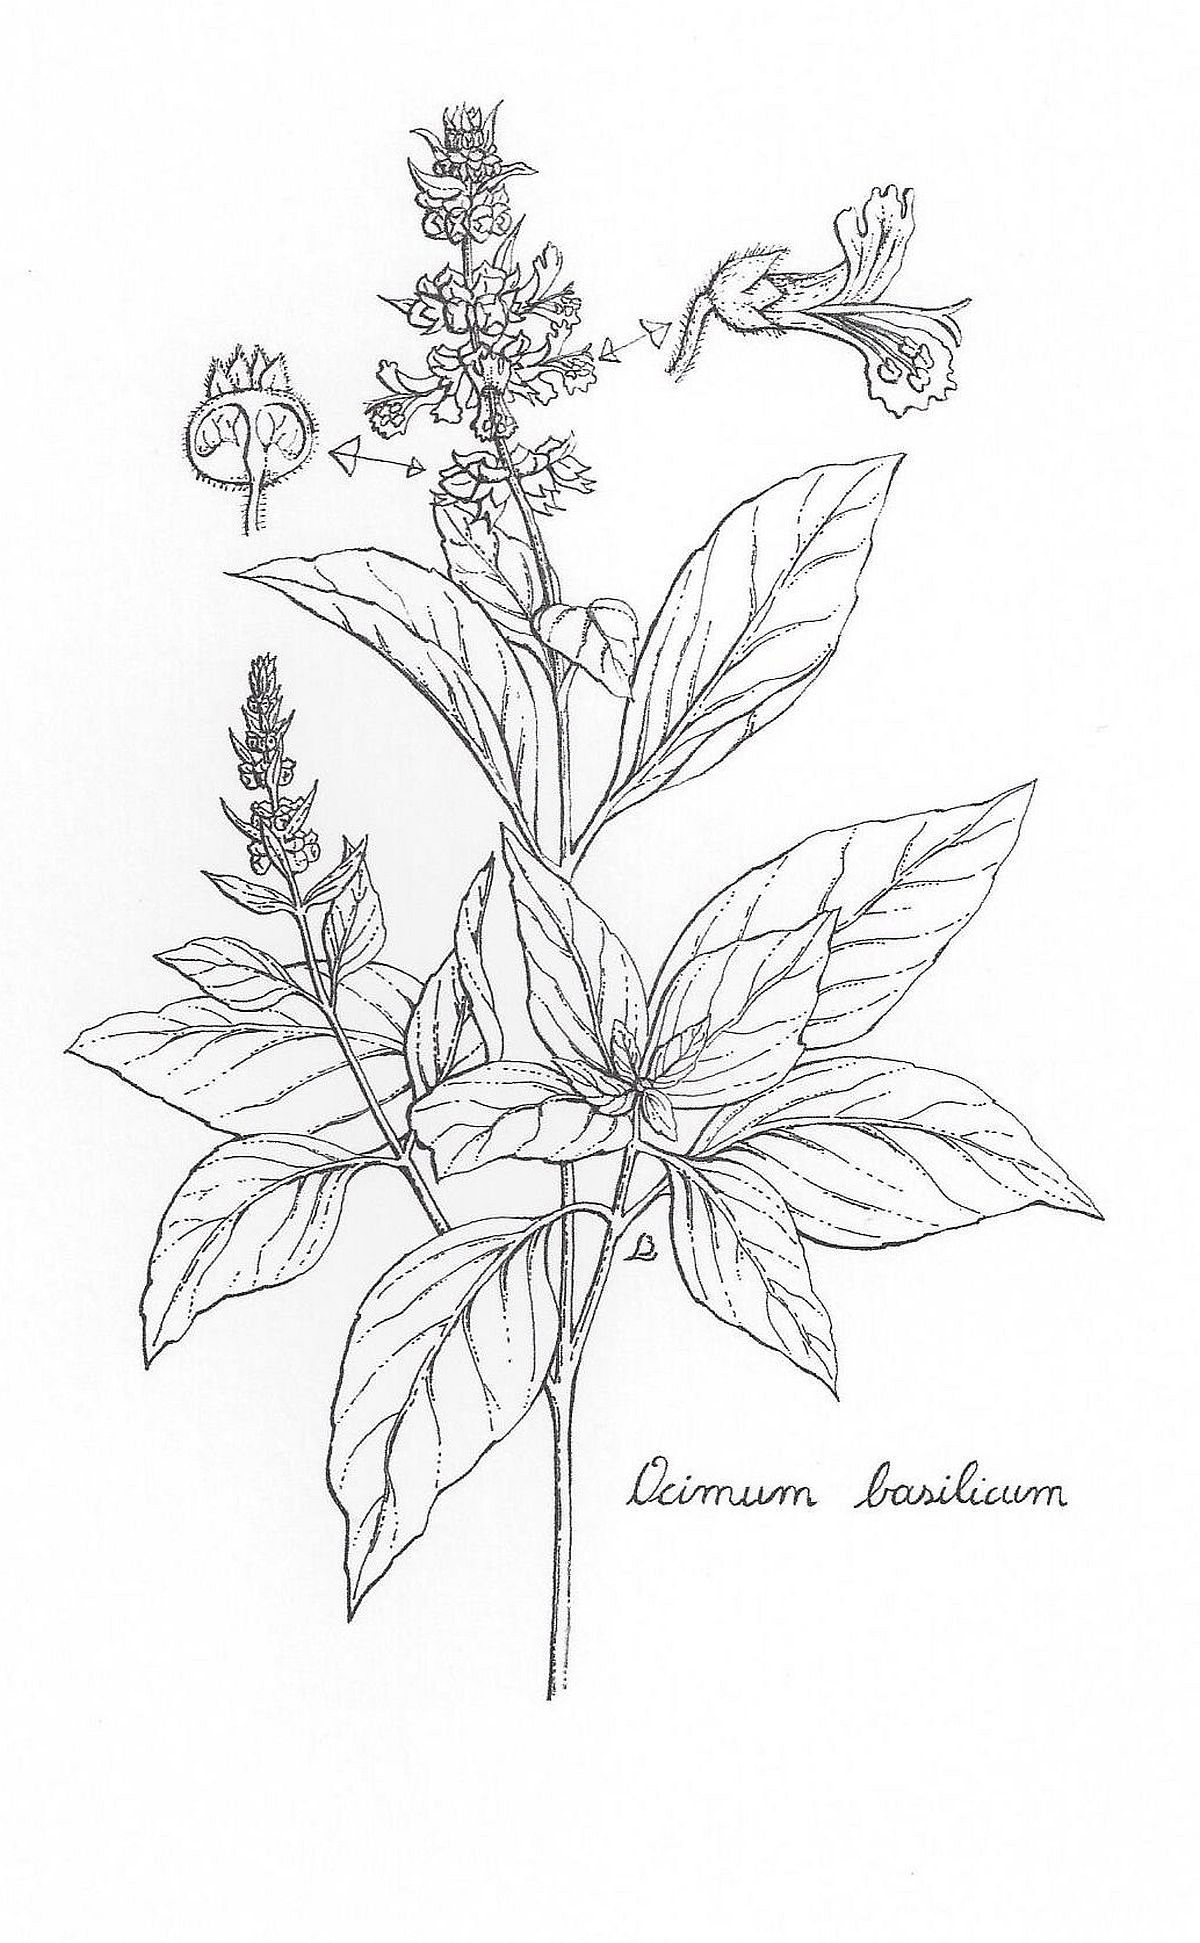 Pin By Ian Brealey On Botanical Illustrations